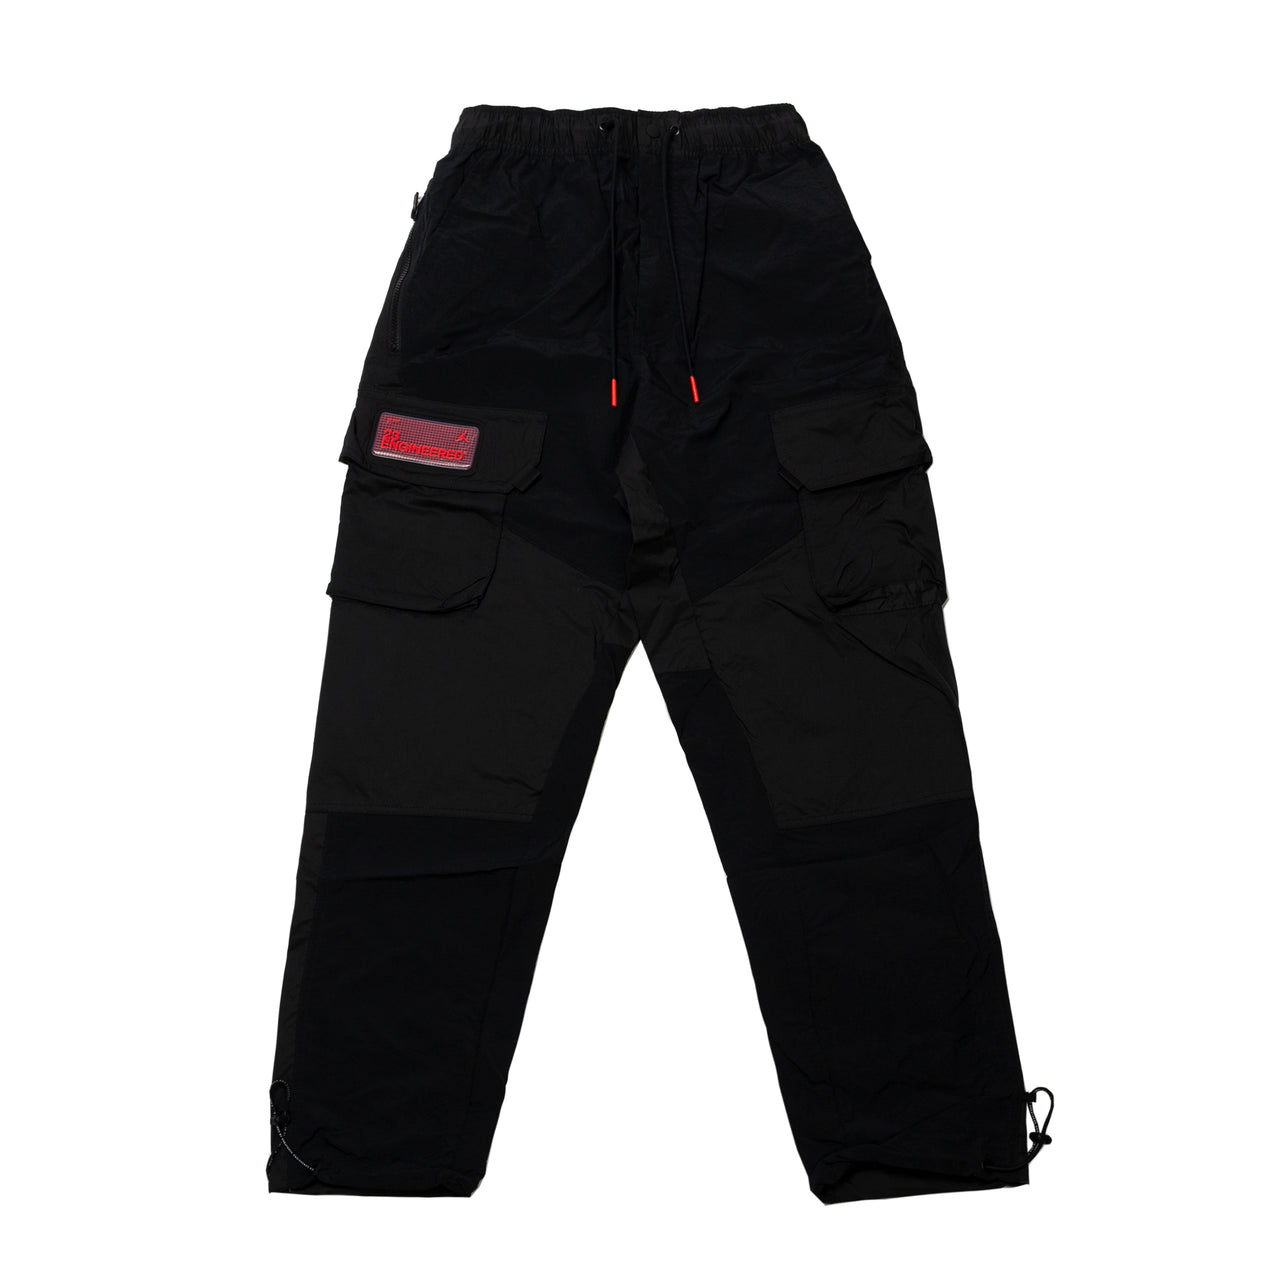 23 ENGINEERED CARGO PANT